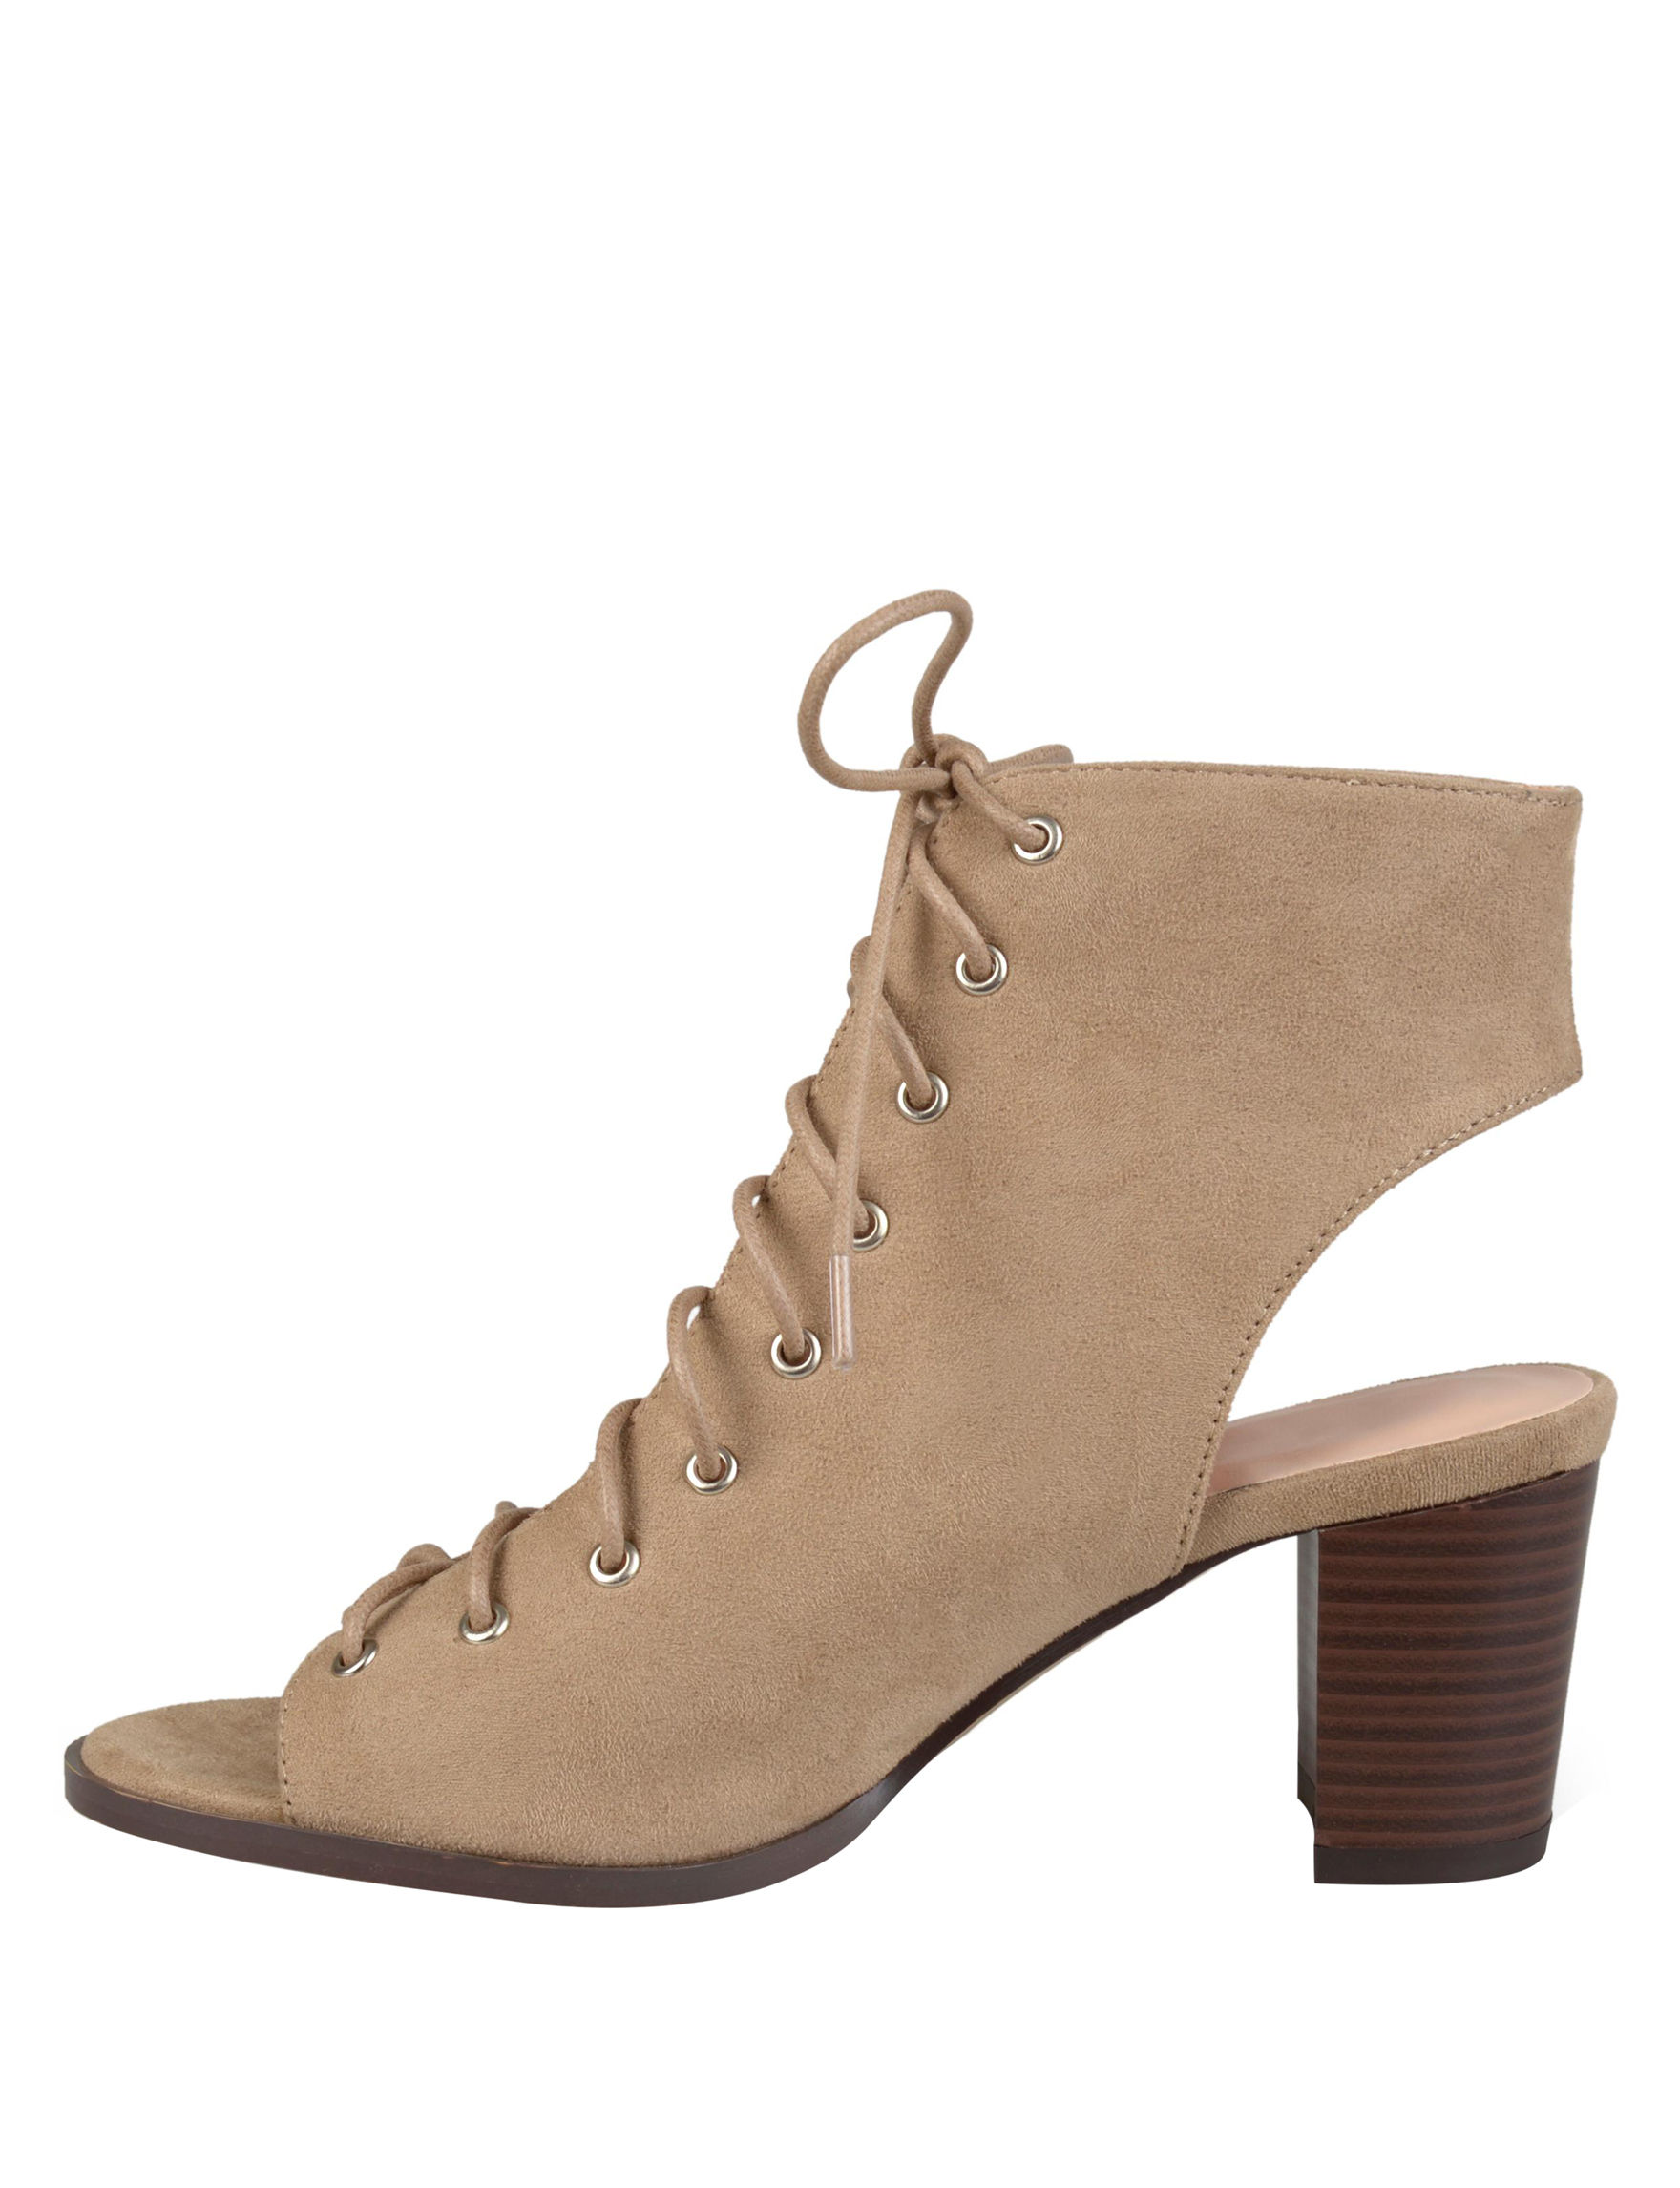 0af44d61cee Journee Collection Women's Posey Lace-Up Ankle Boots | Stage Stores